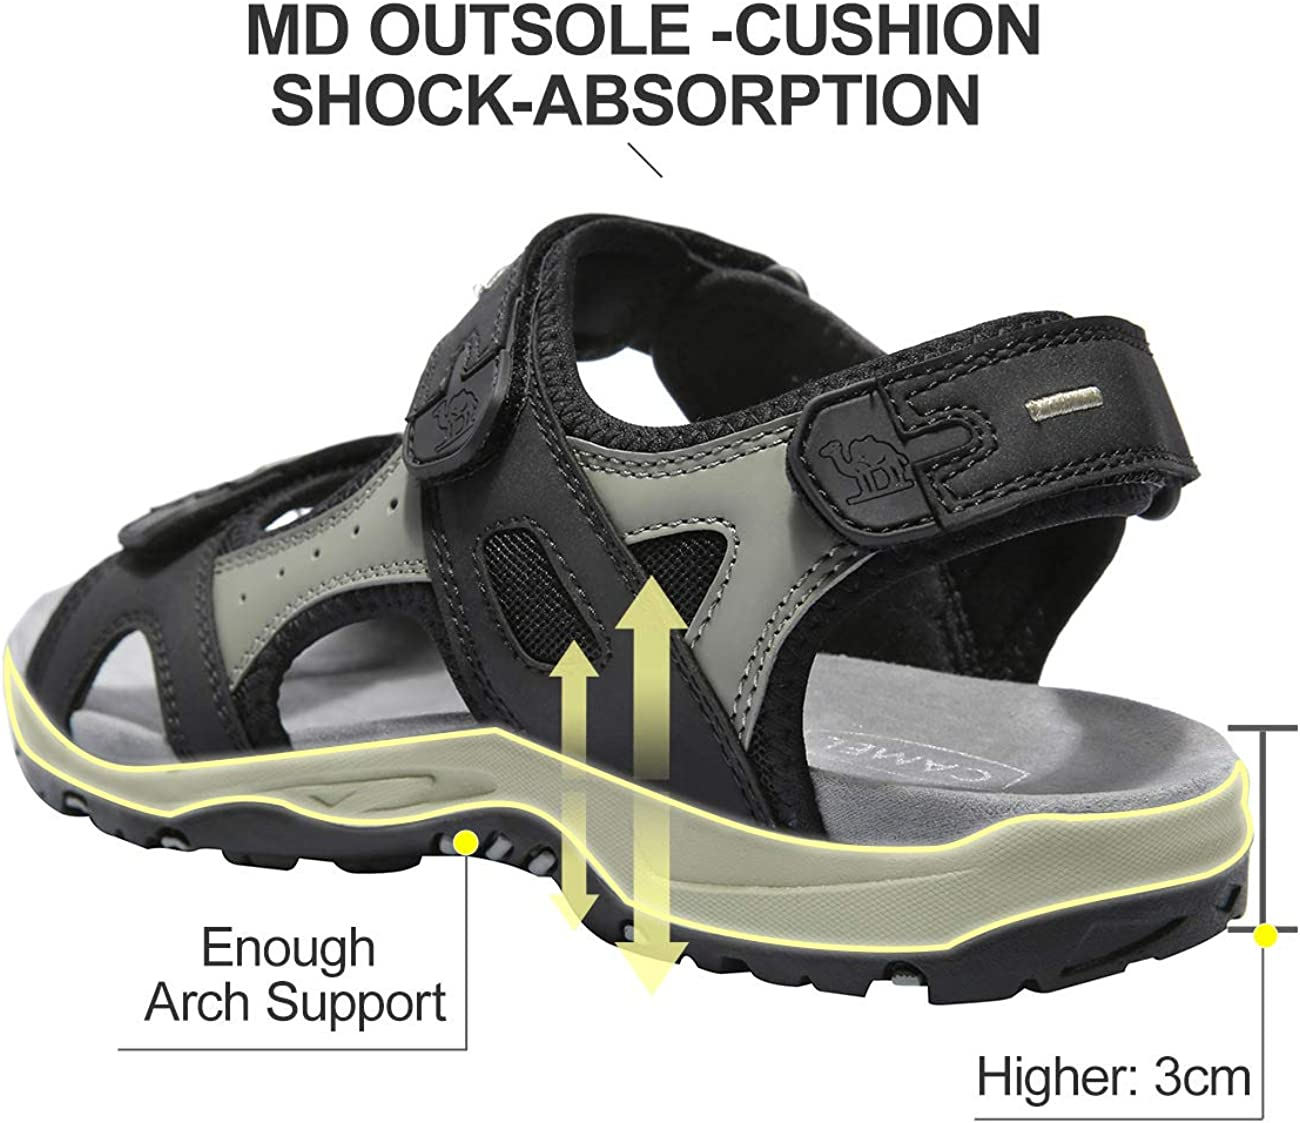 CAMEL CROWN Mens Hiking Sandals Waterproof Comfort Walking Arch Support Sandals for Outdoor Sport Beach Water Athletic Open Toe